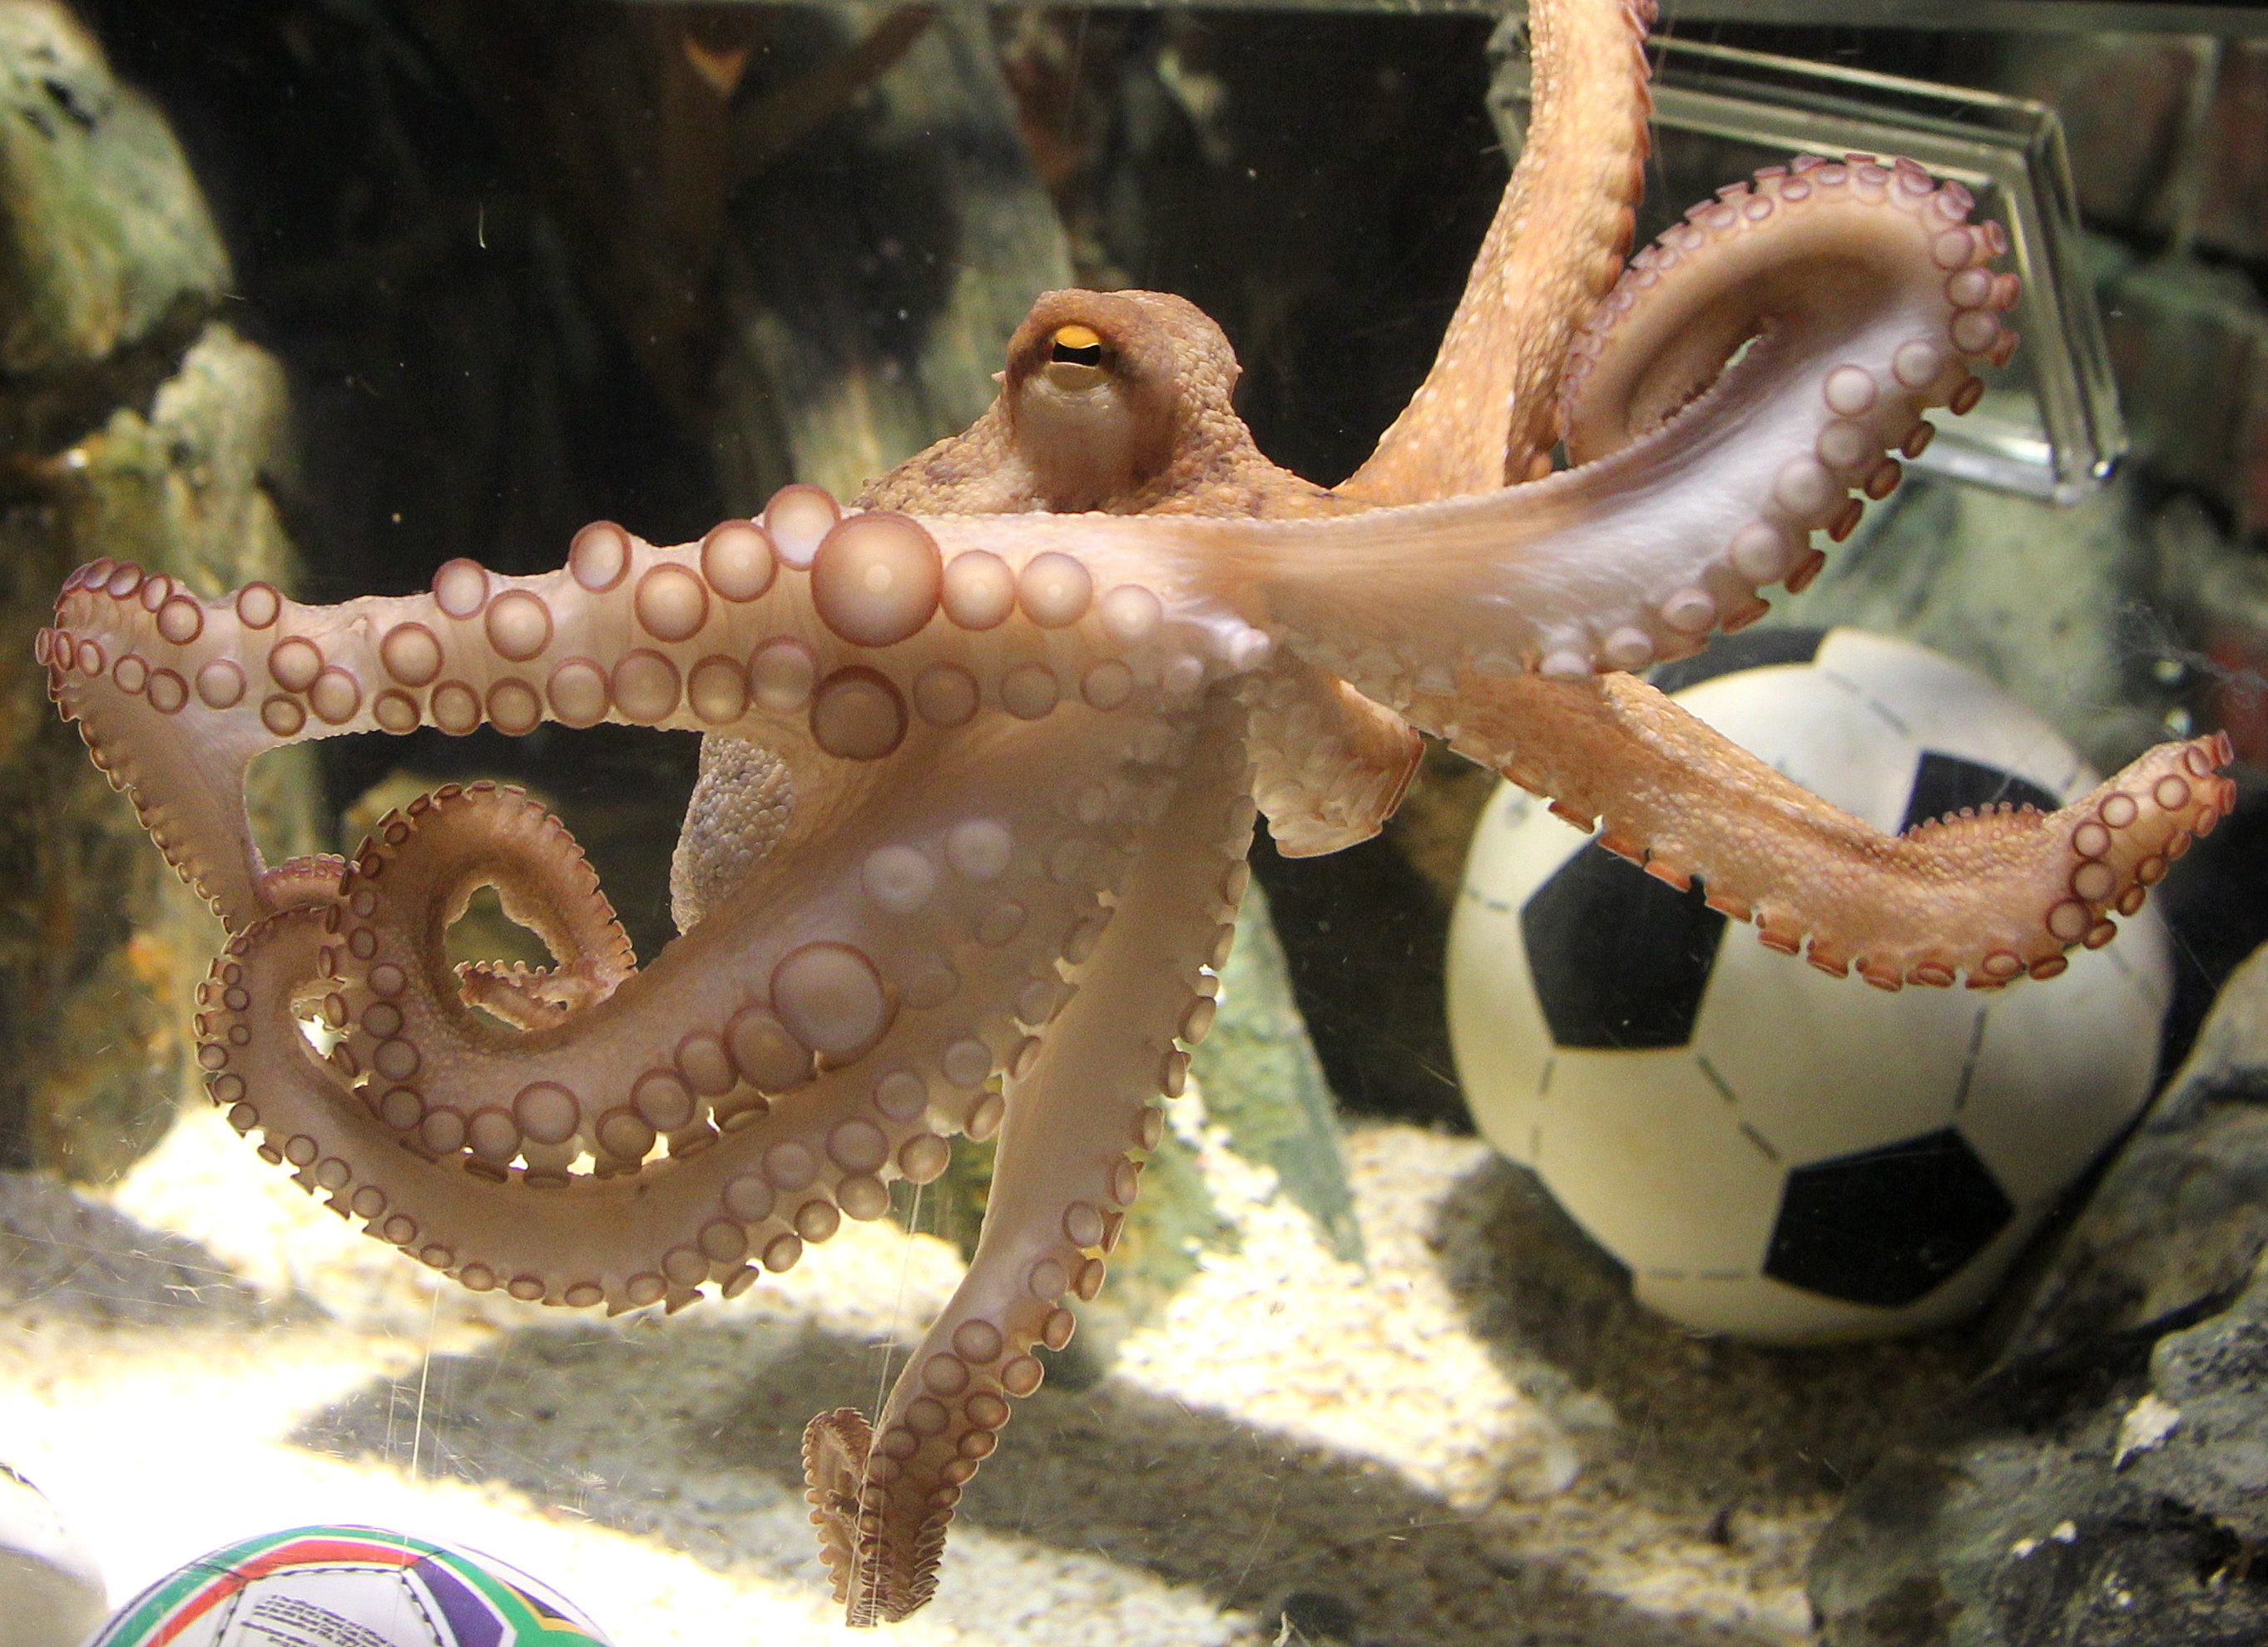 'Psychic' World Cup Octopus killed for food in Japan